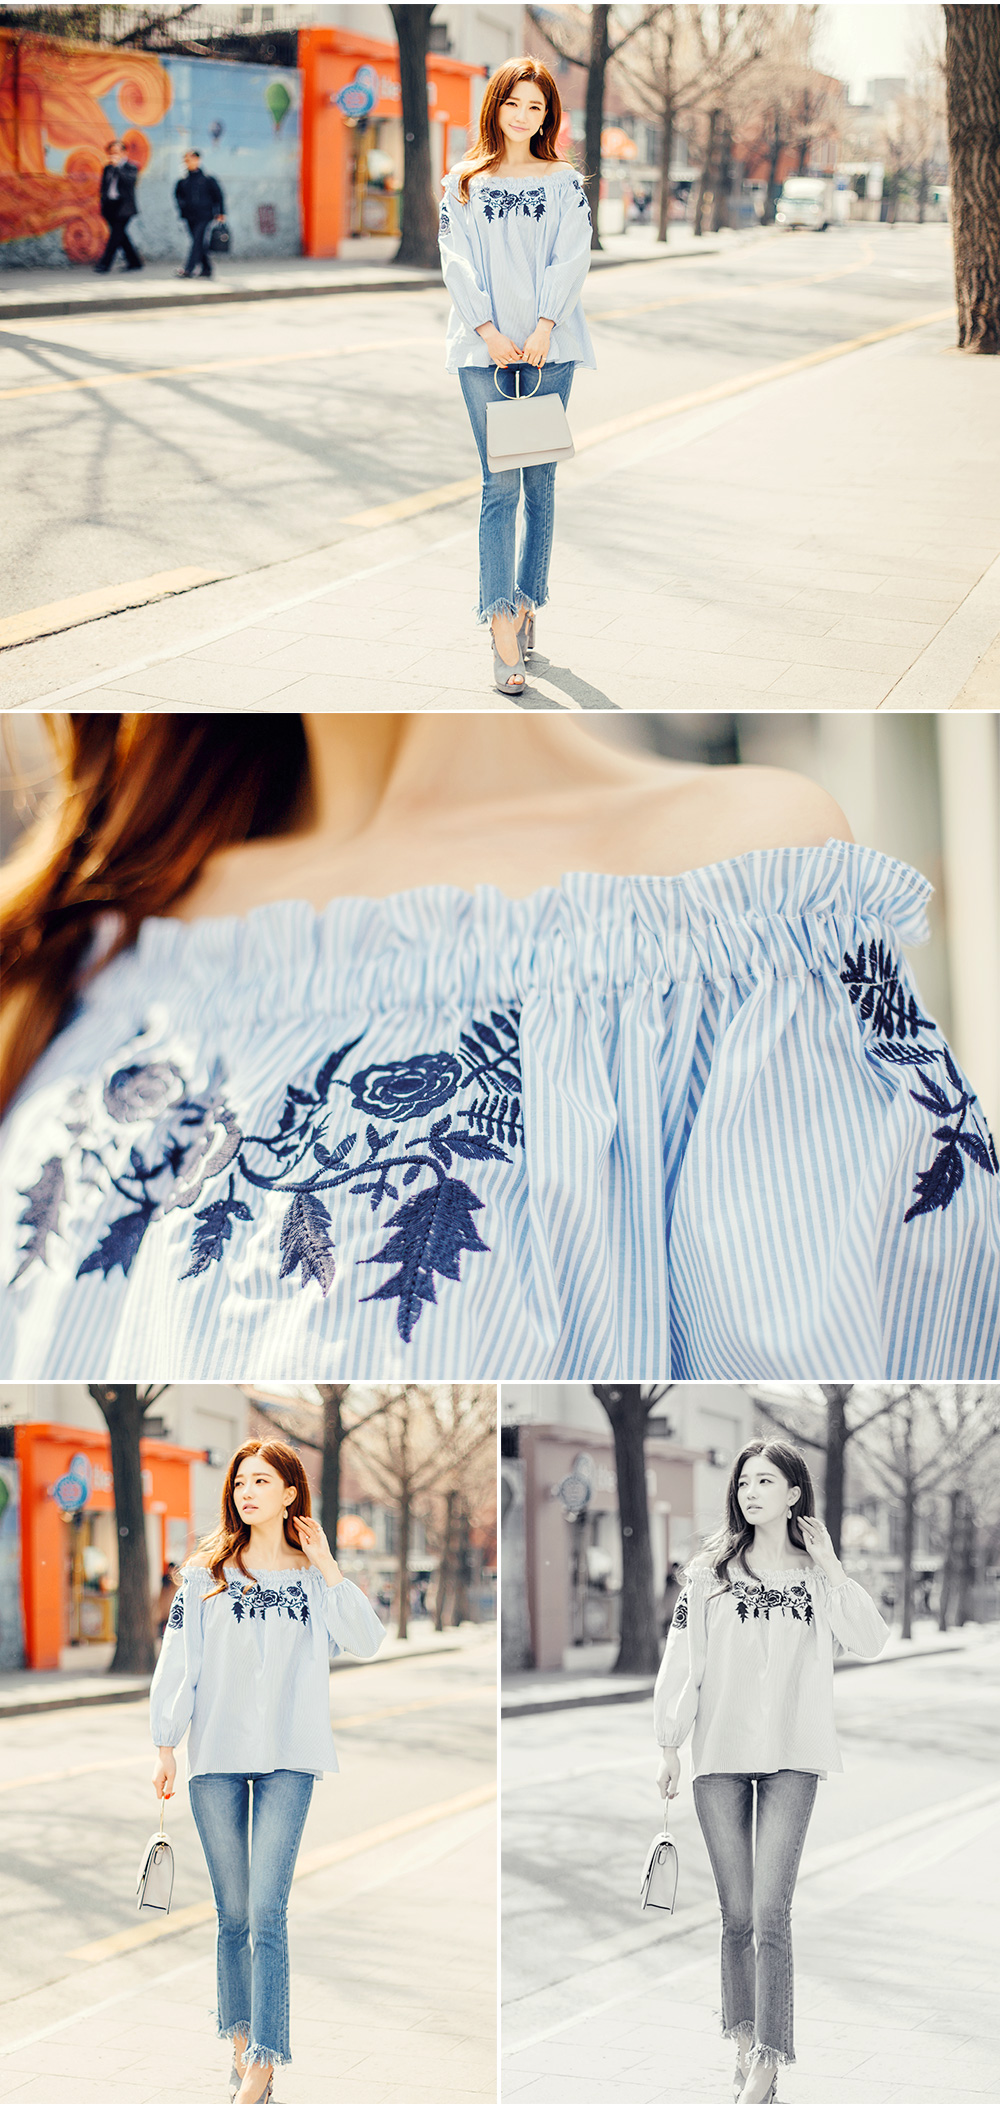 //cdn.nhanh.vn/cdn/store/29770/psCT/20181003/9325561/CHUU_Rose_Embroidered_Off_Shoulder_Blouse_(4).jpg